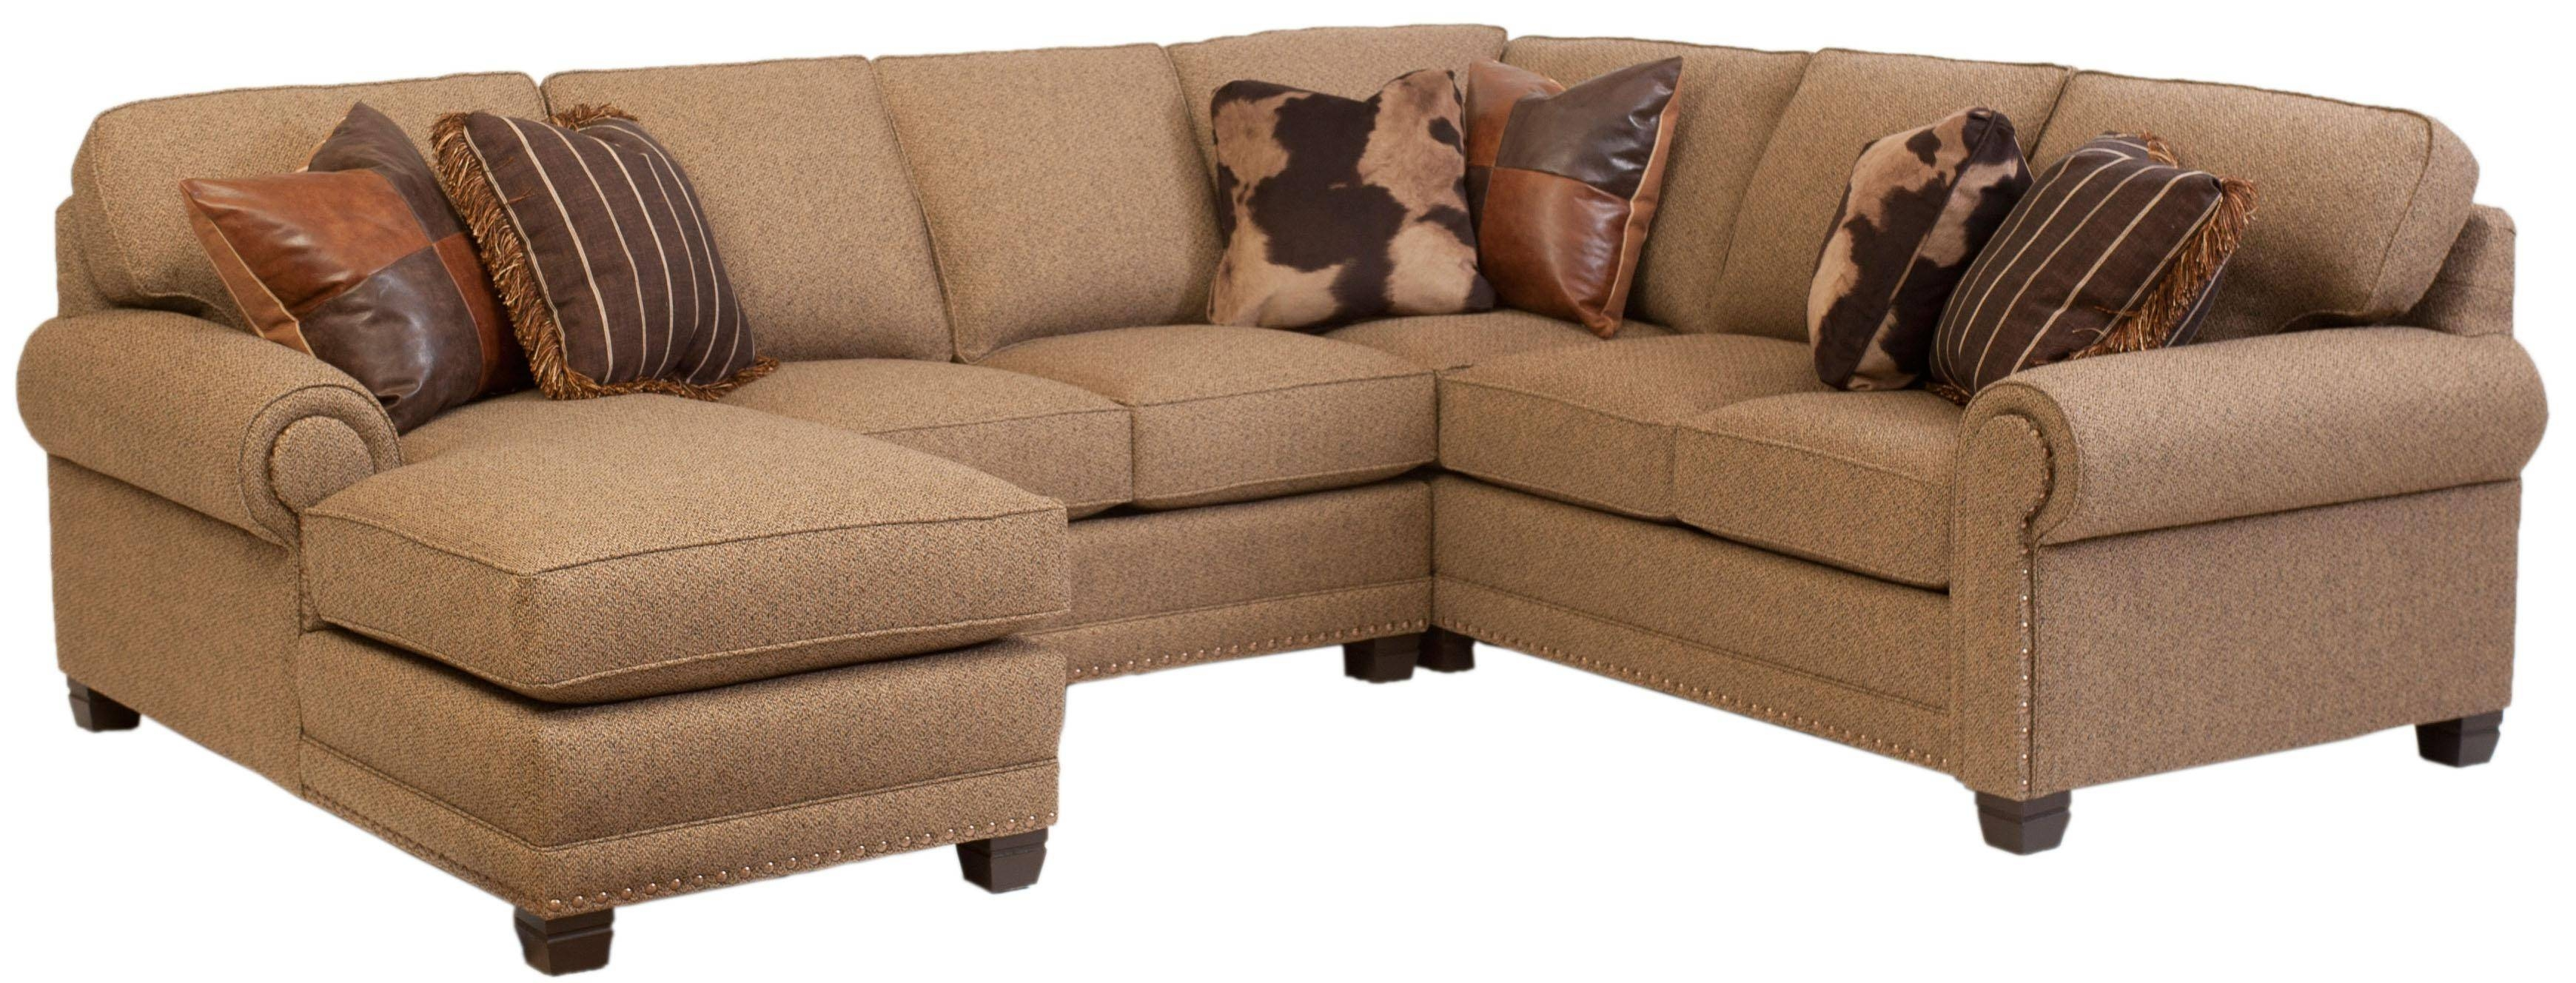 Simple 3 Piece Leather Sectional Sofa With Chaise 64 About Remodel with Individual Piece Sectional Sofas (Image 20 of 25)